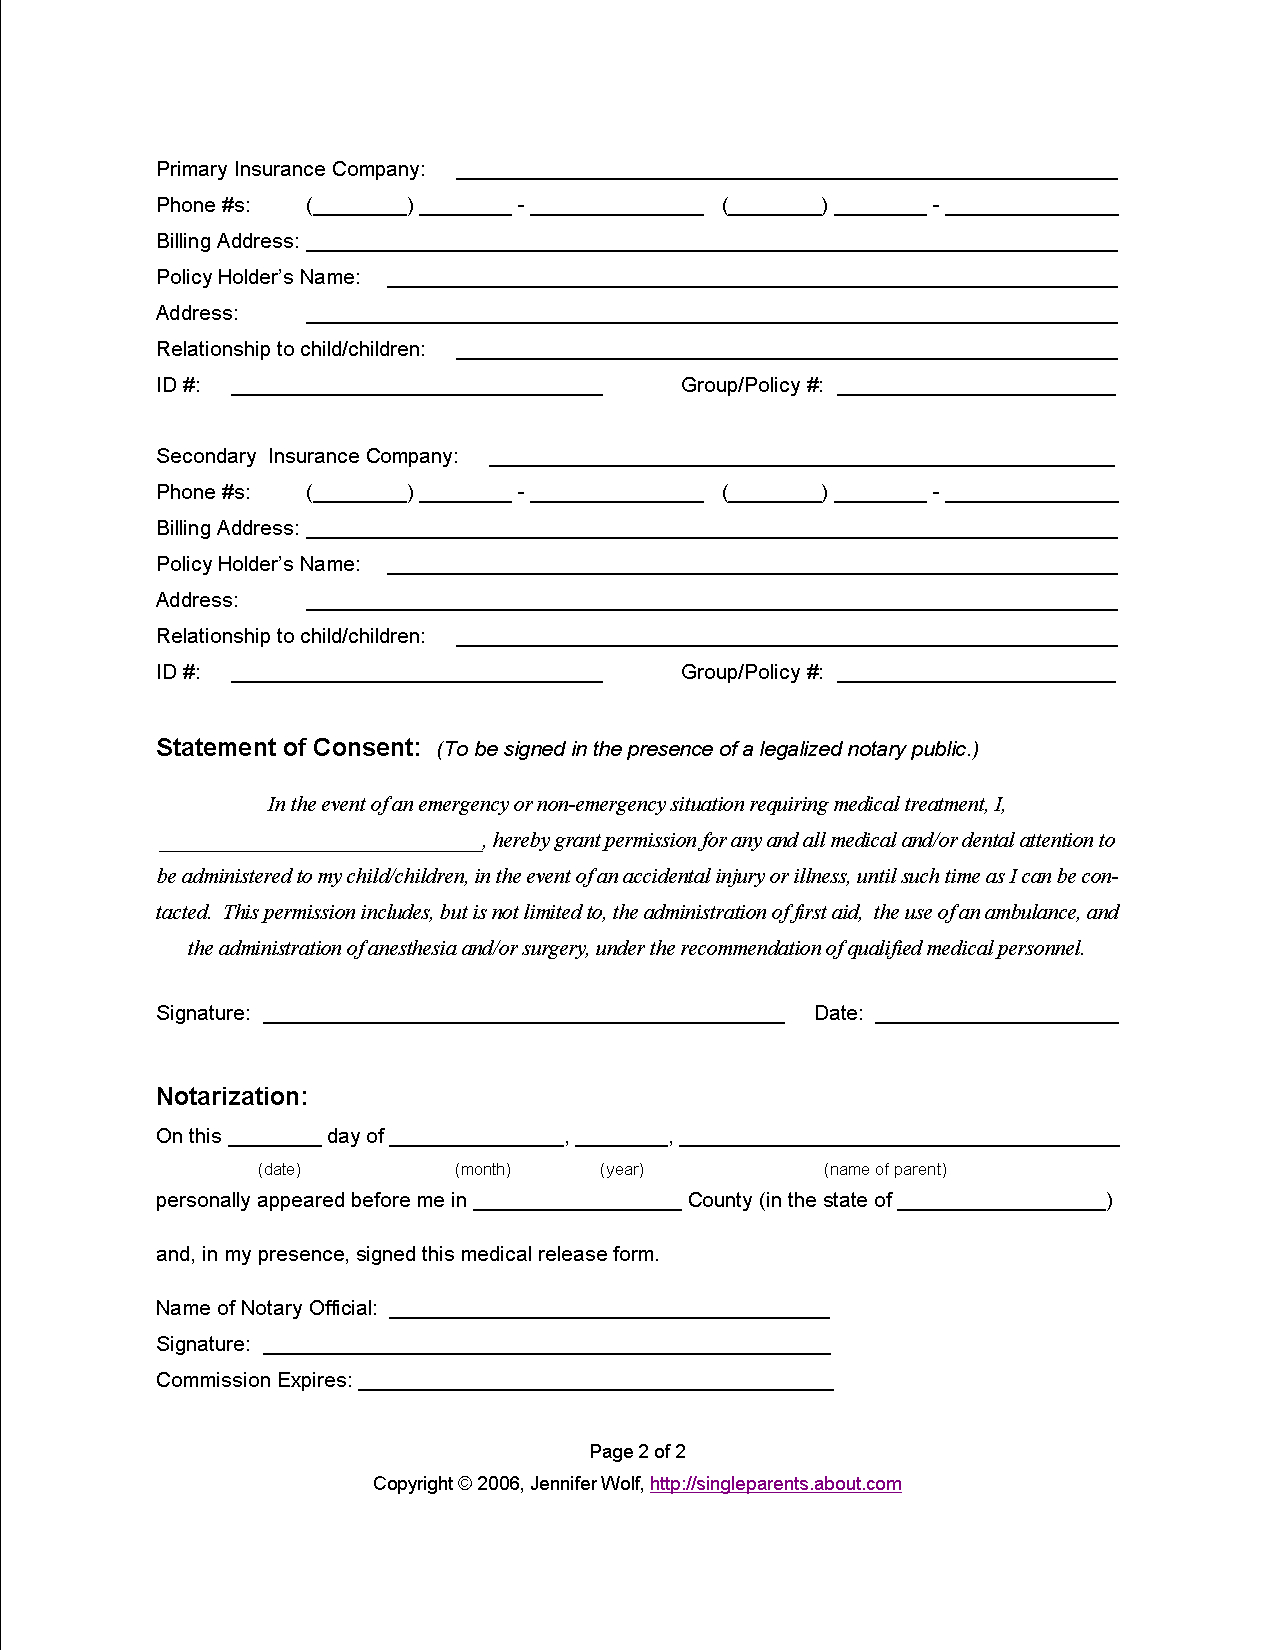 Do You Have A Medical Release Form For Your Kids? | Learning And - Free Printable Medical Consent Form